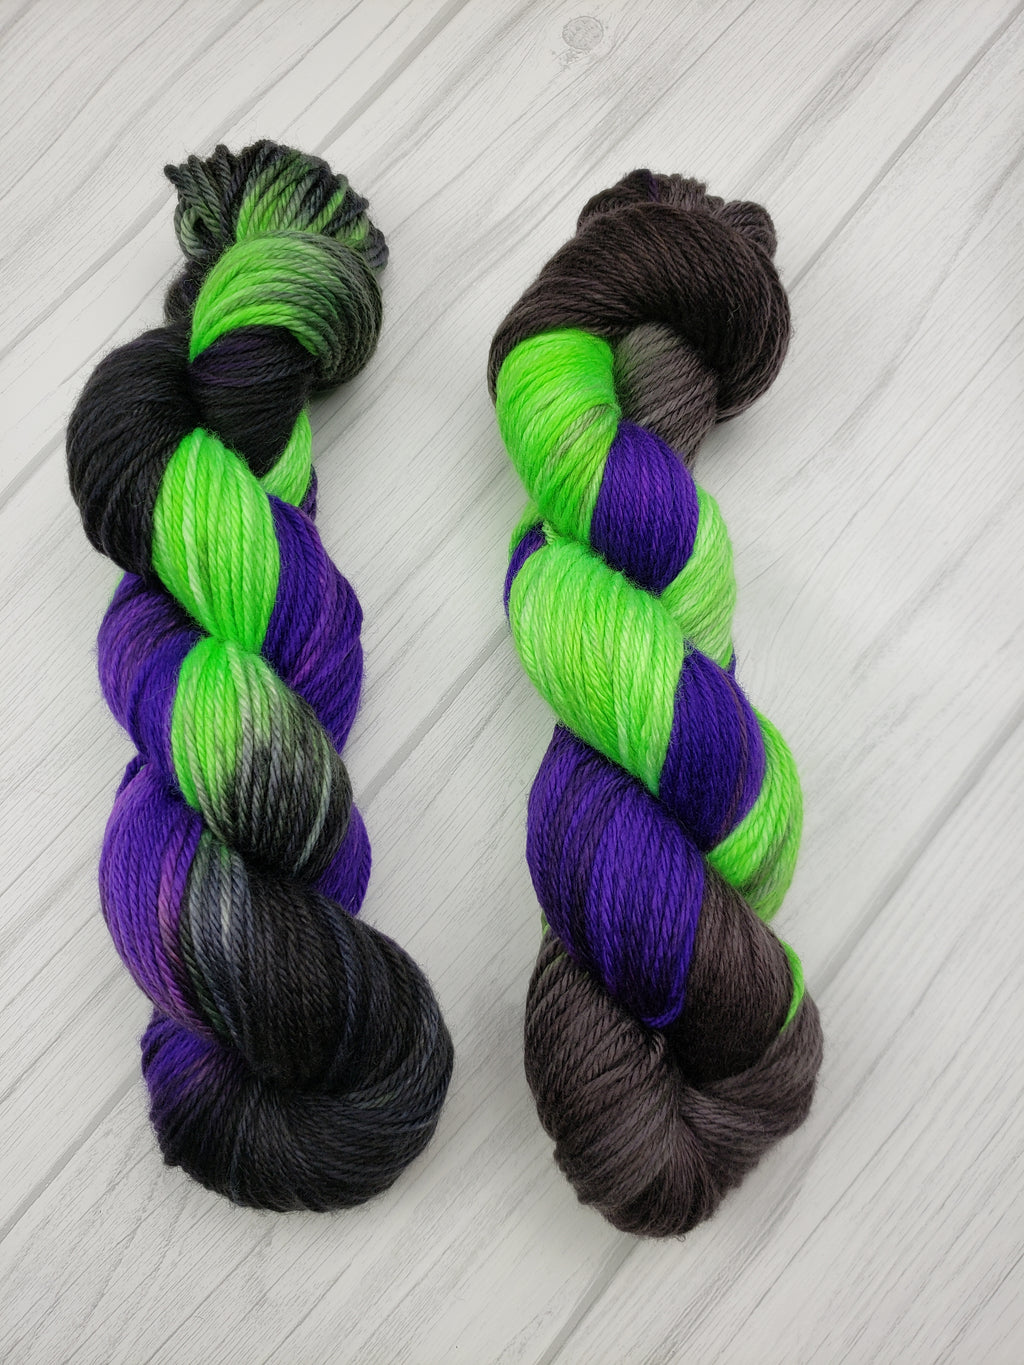 Maleficent, Hand Dyed Wool  in Sock Weight - Spindle warps yarns